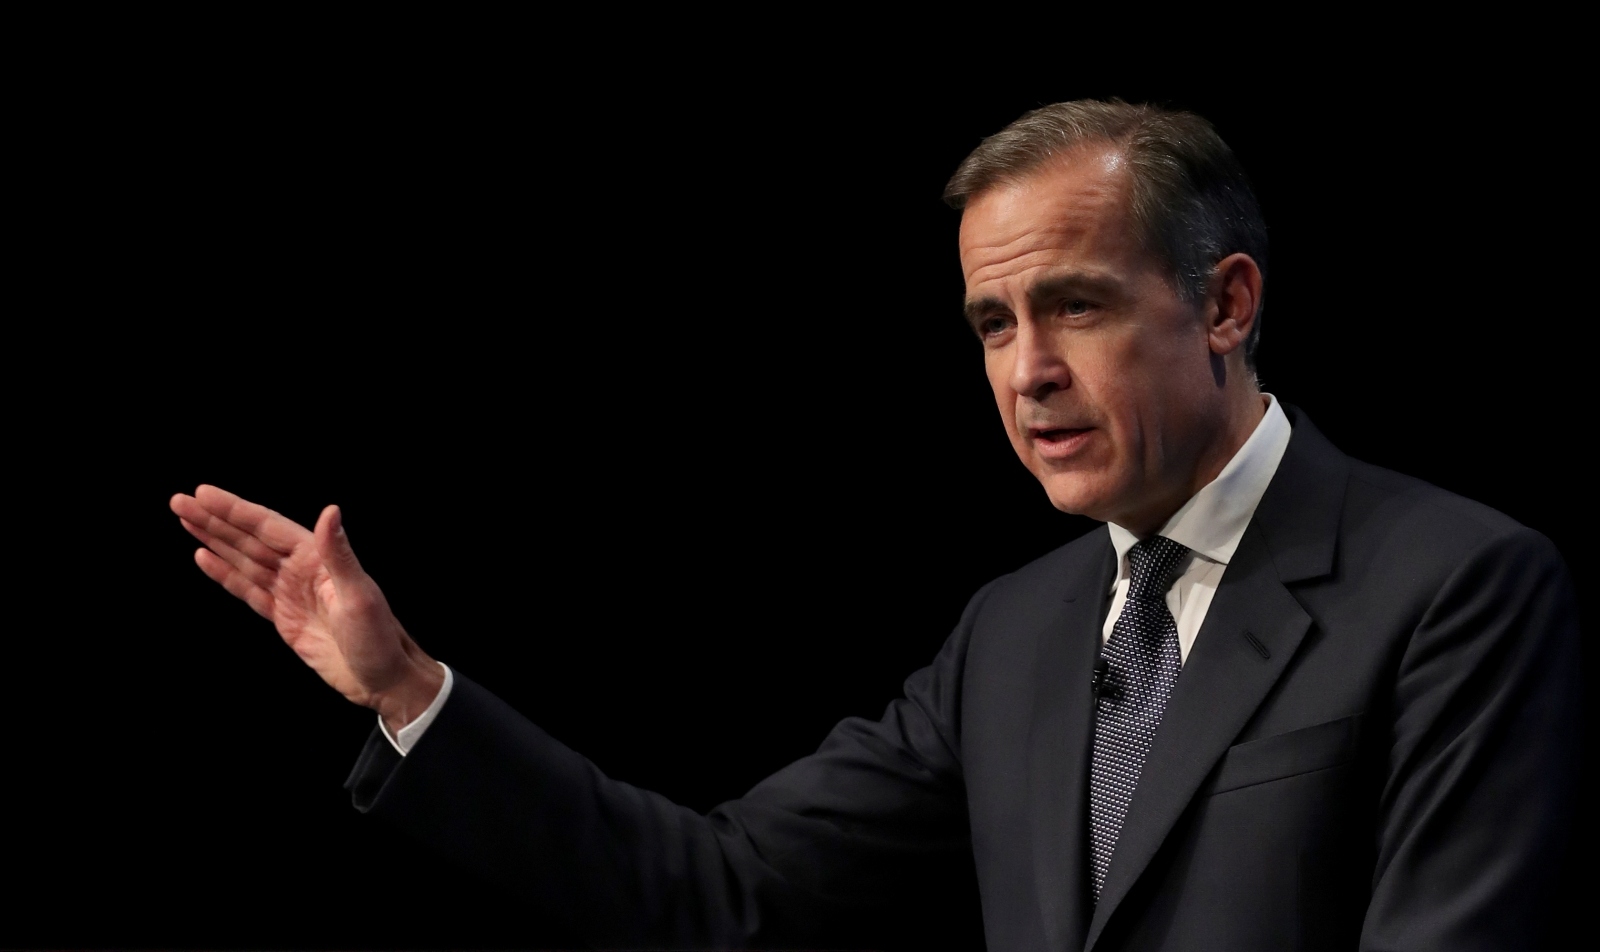 Bank of England governor Mark Carney: There are 'high levels' of inequality in UK